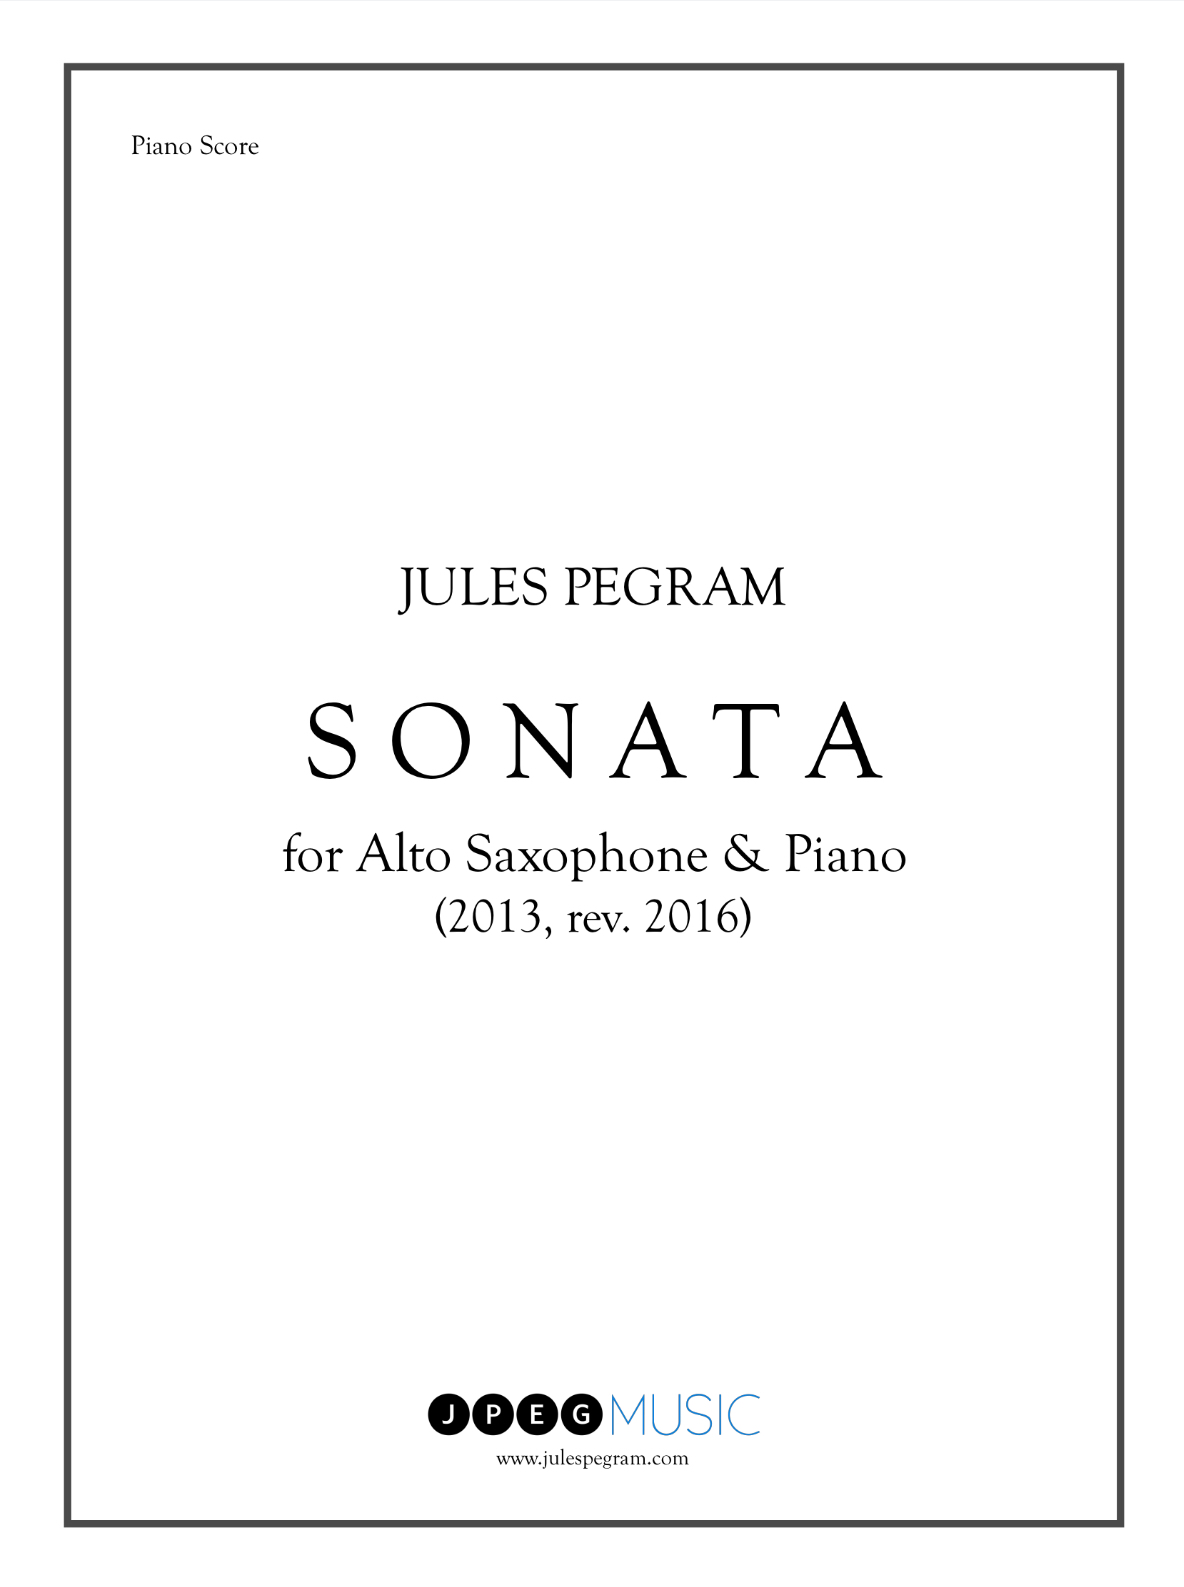 Sonata For Alto Saxophone & Piano by Jules Pegram